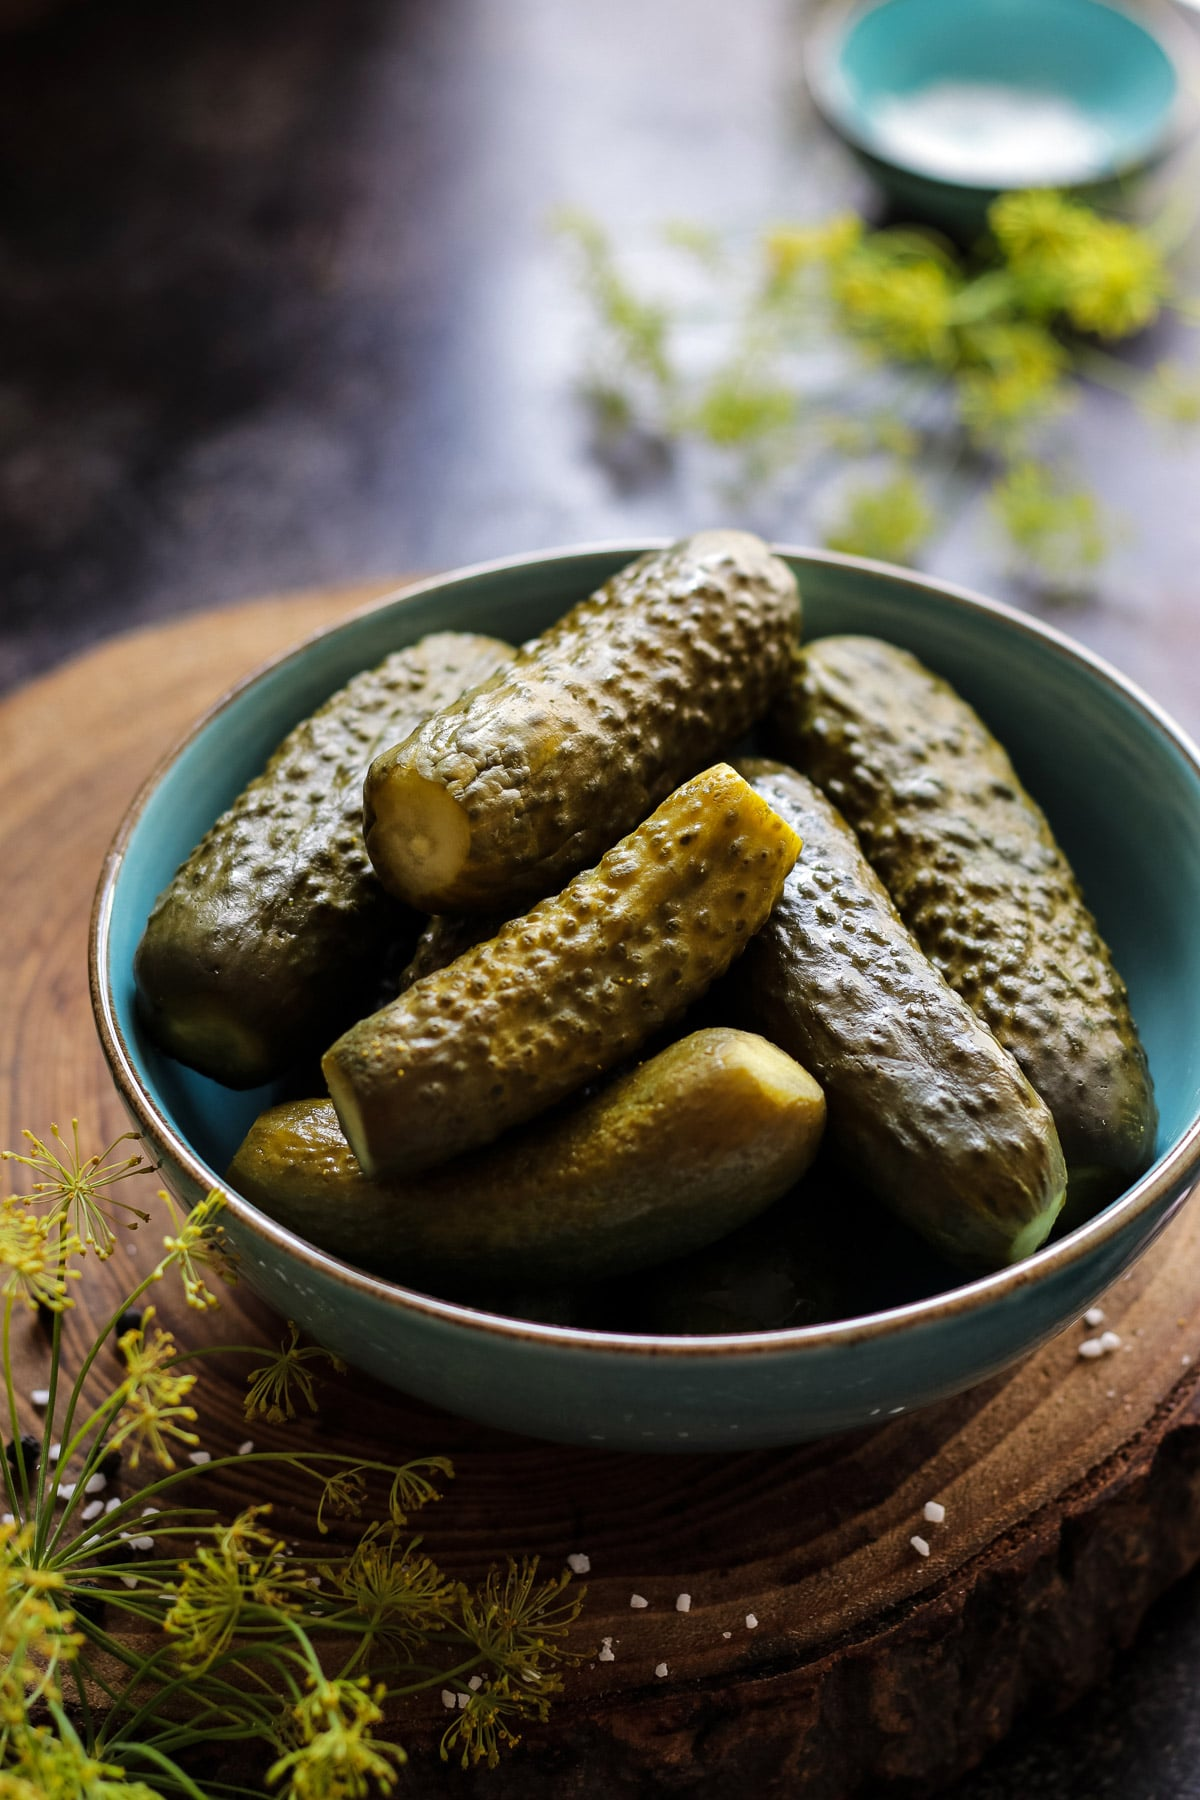 Pickled cucumbers served in a bowl